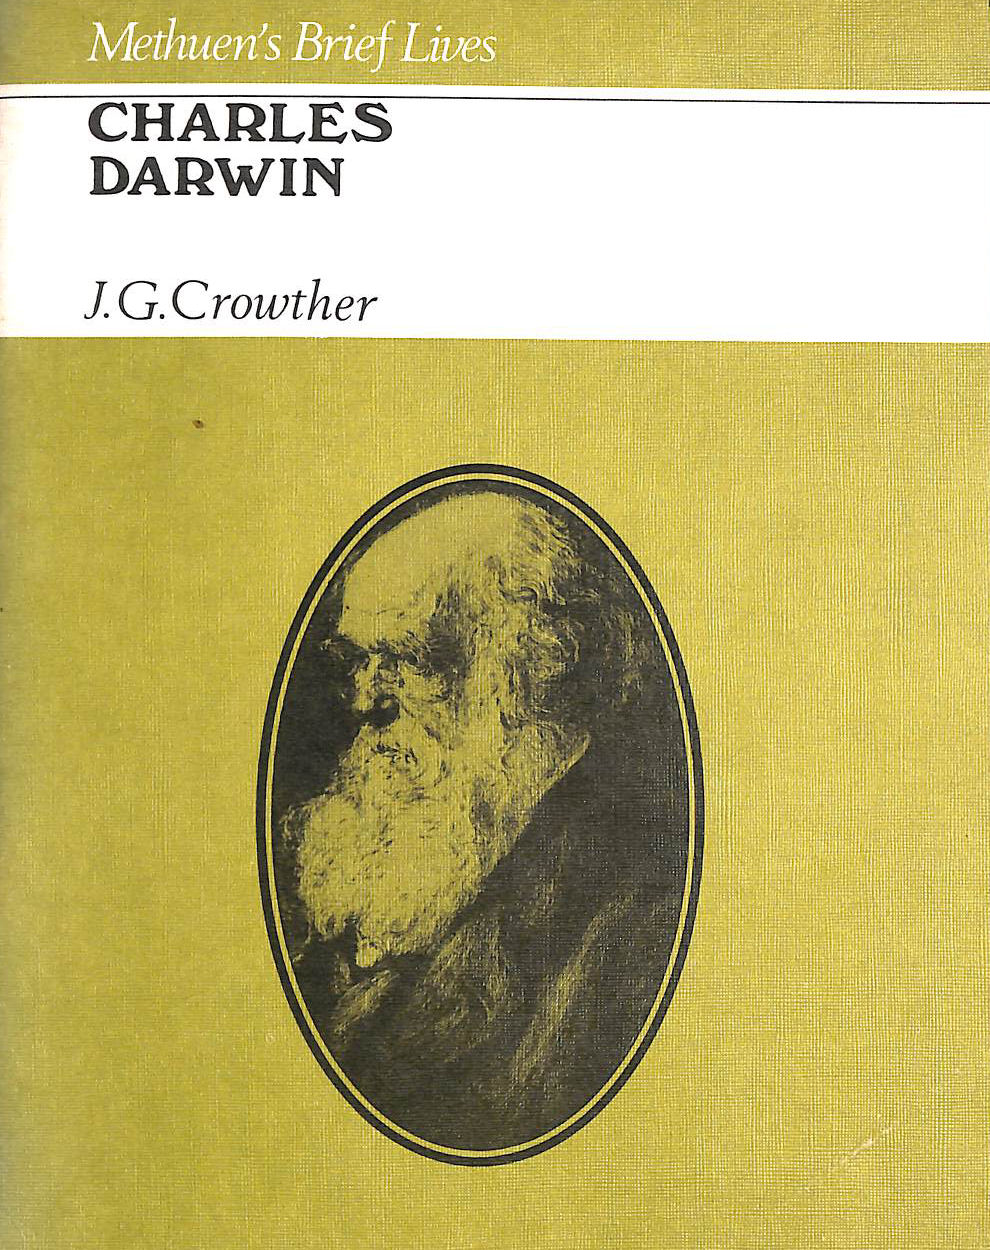 Image for Charles Darwin (Brief Lives)